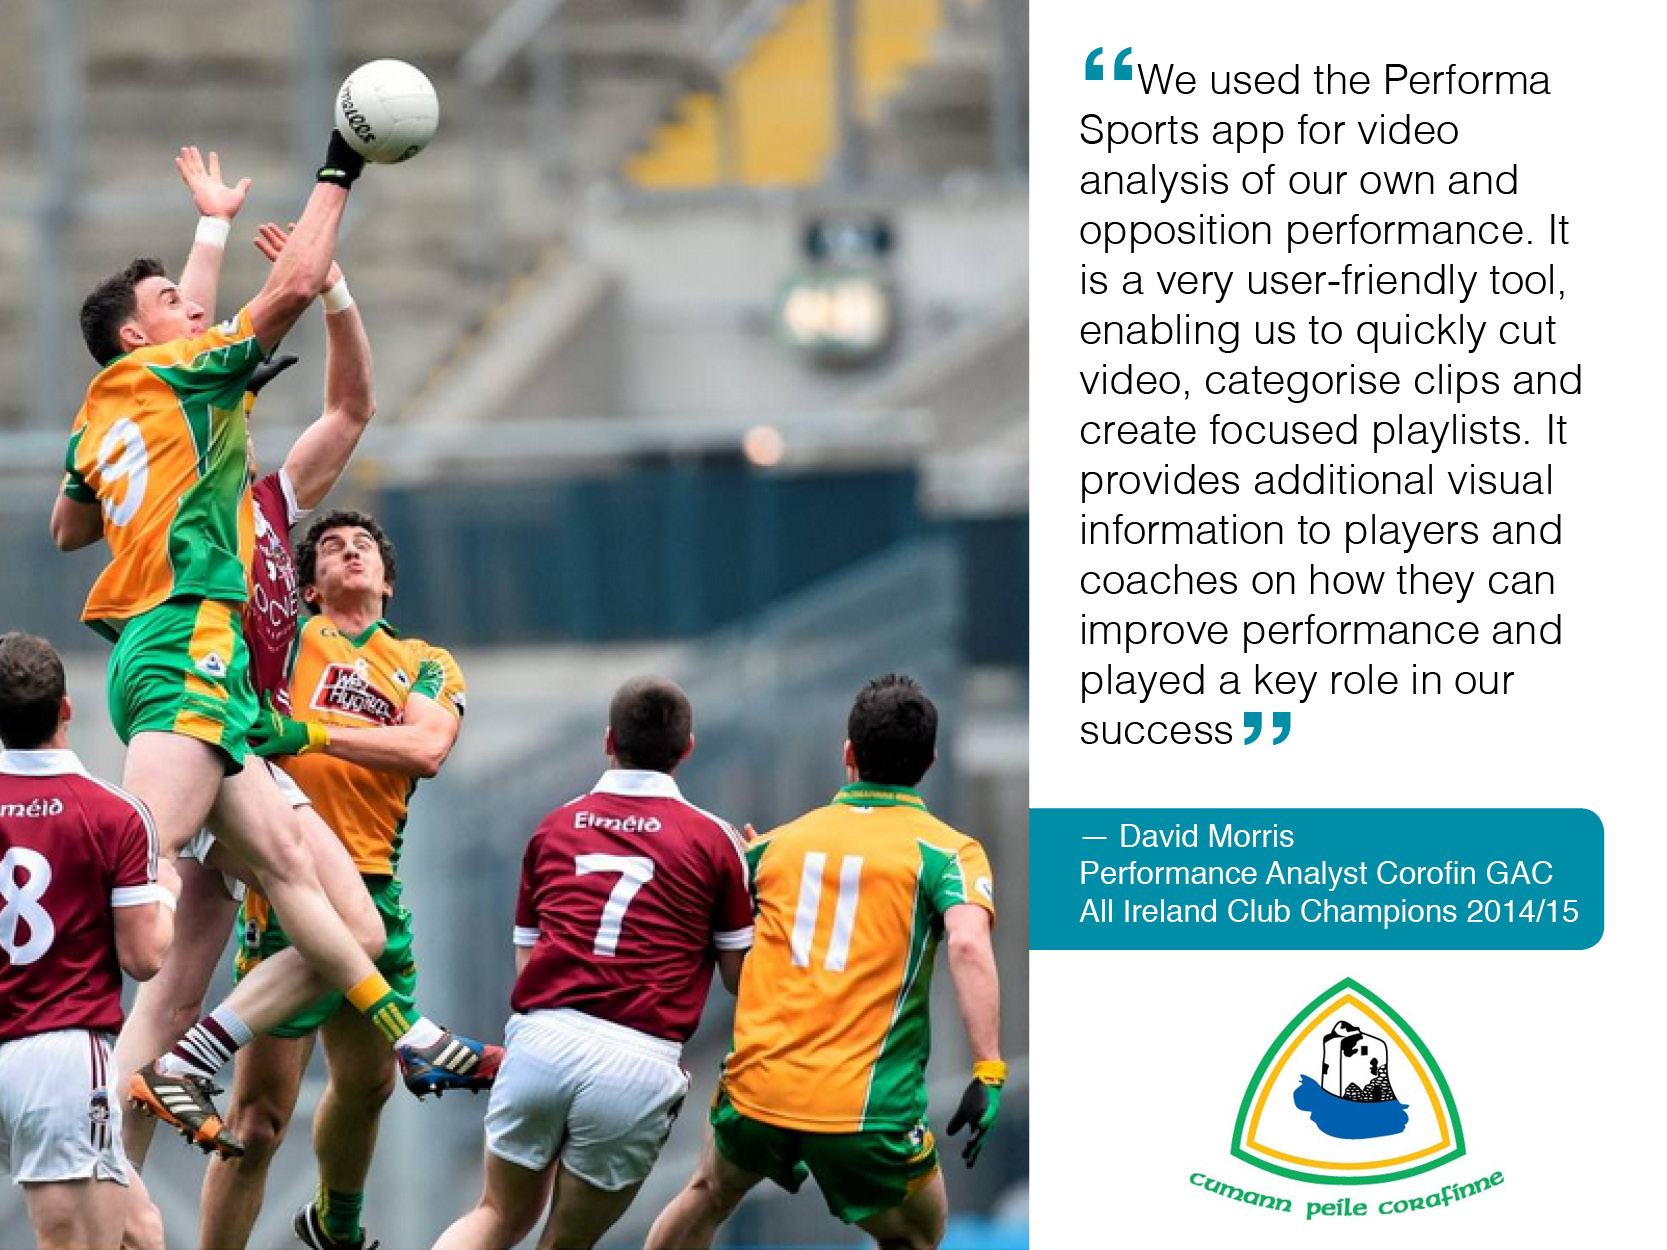 Performa Sports performance analysis helped win All Ireland